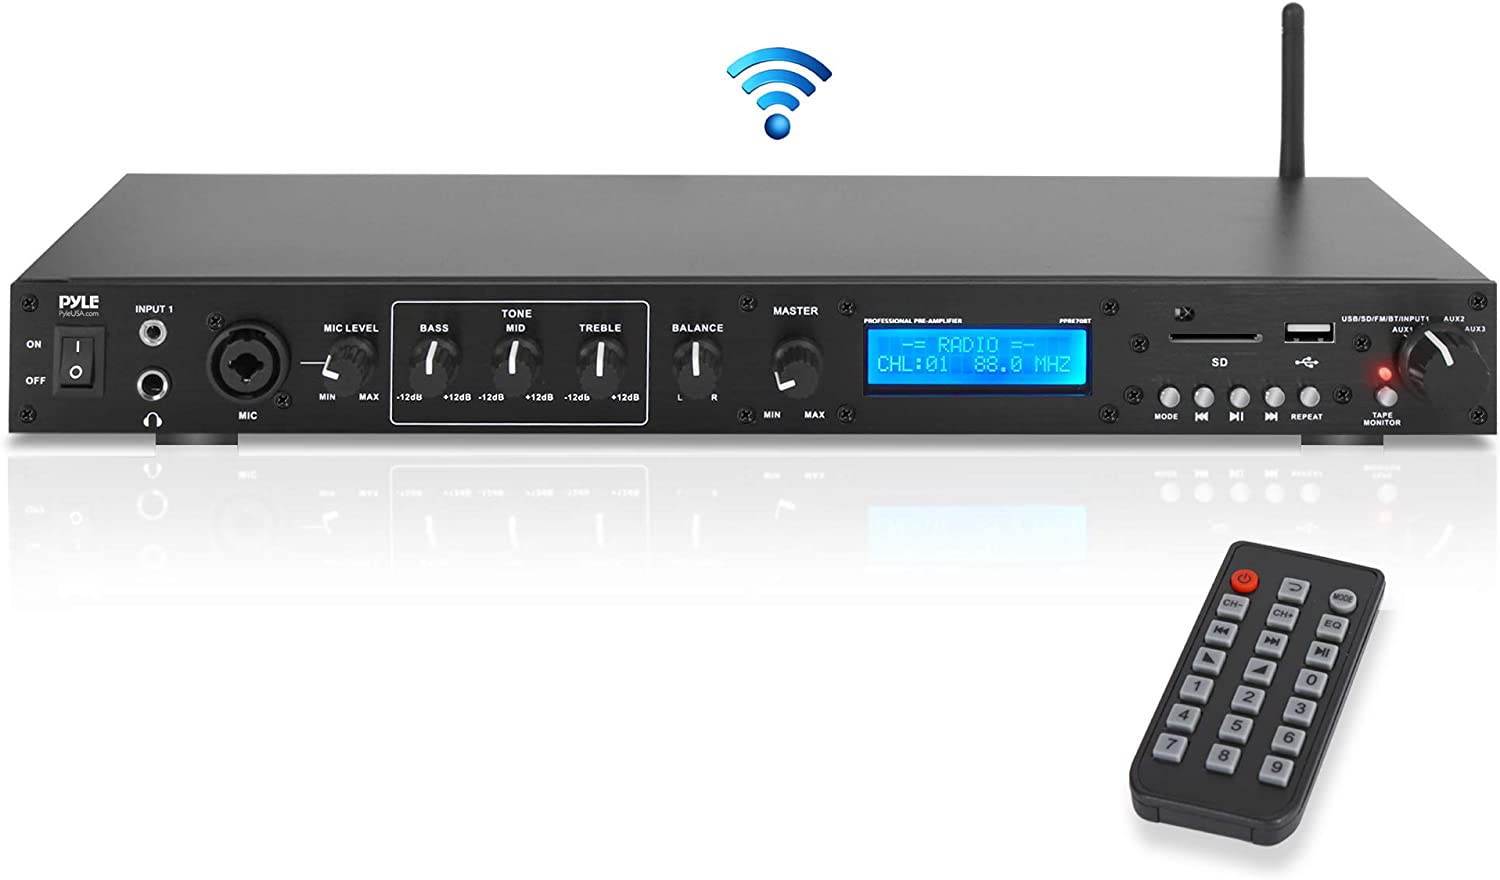 Pyle Pro Rack Mount Studio Pre-Amplifier - Audio Receiver System w/Digital LCD Display Bluetooth FM Radio Recording Mode Remote Control USB Flash or SD Card Reader Input and Output Jack - PPRE70BT